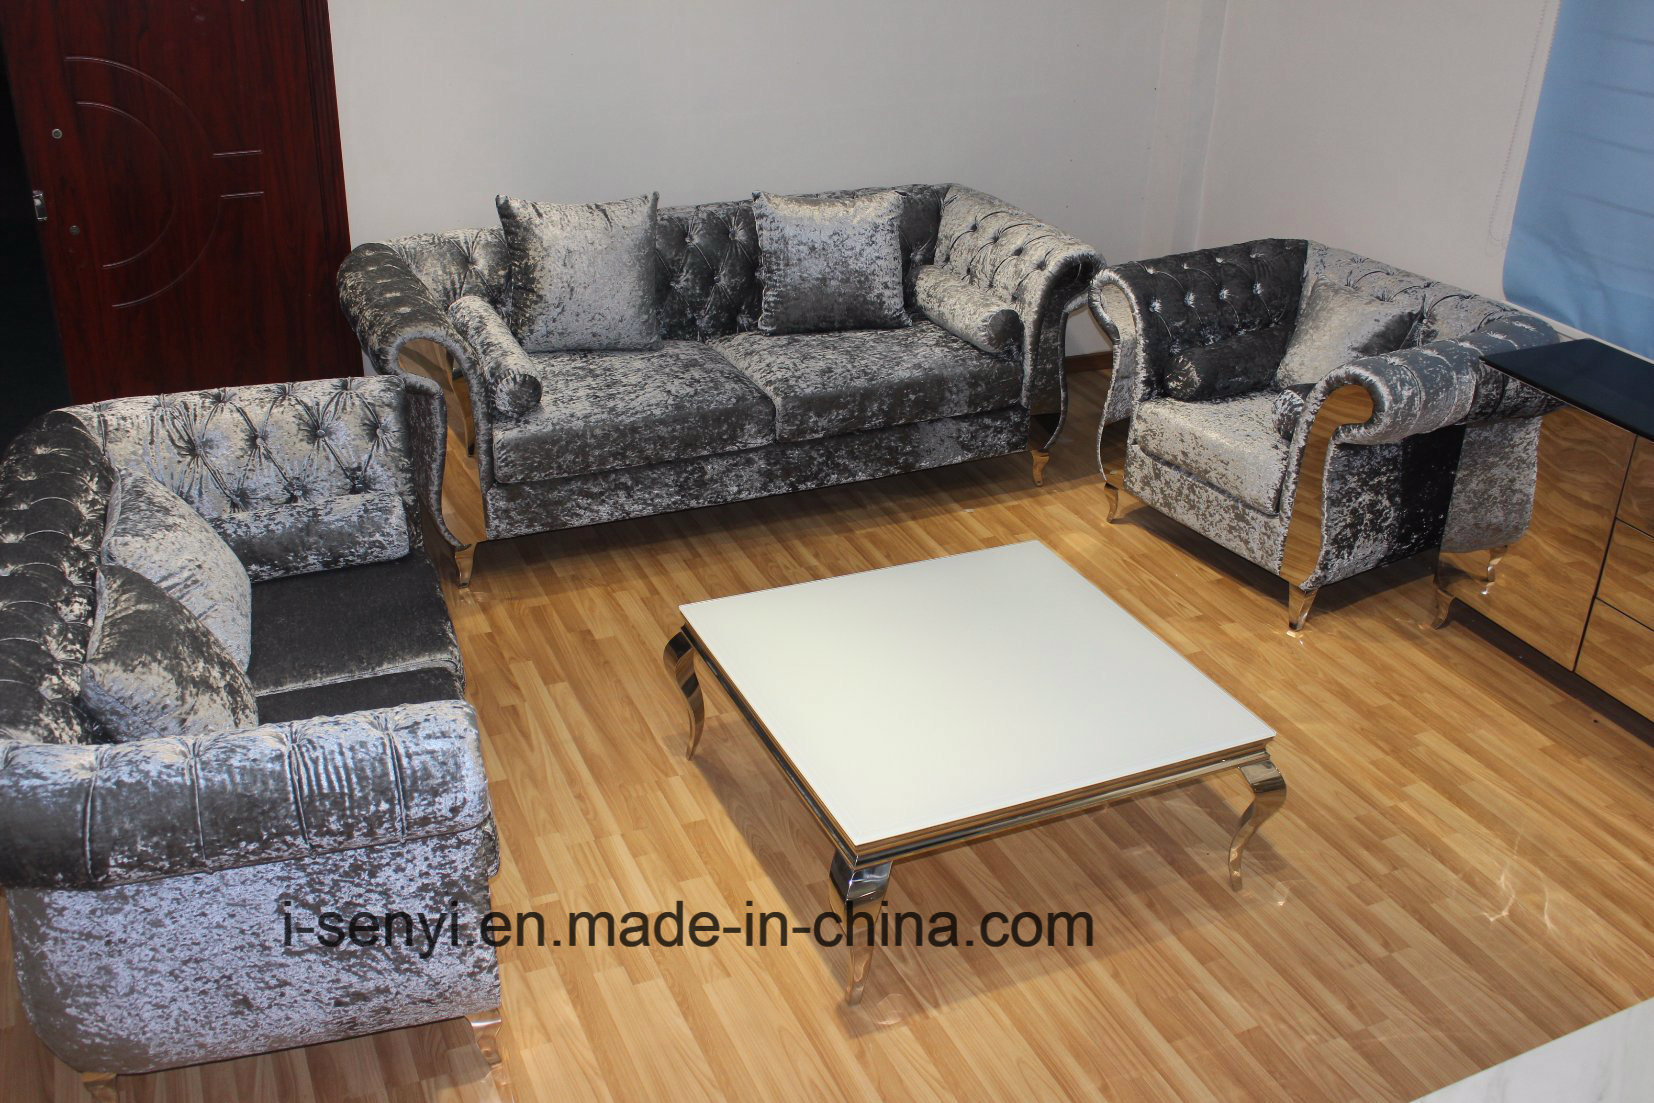 China modern italian living room furniture hotel reception stainless steel leg sofa 1 seat china home furniture living room furniture